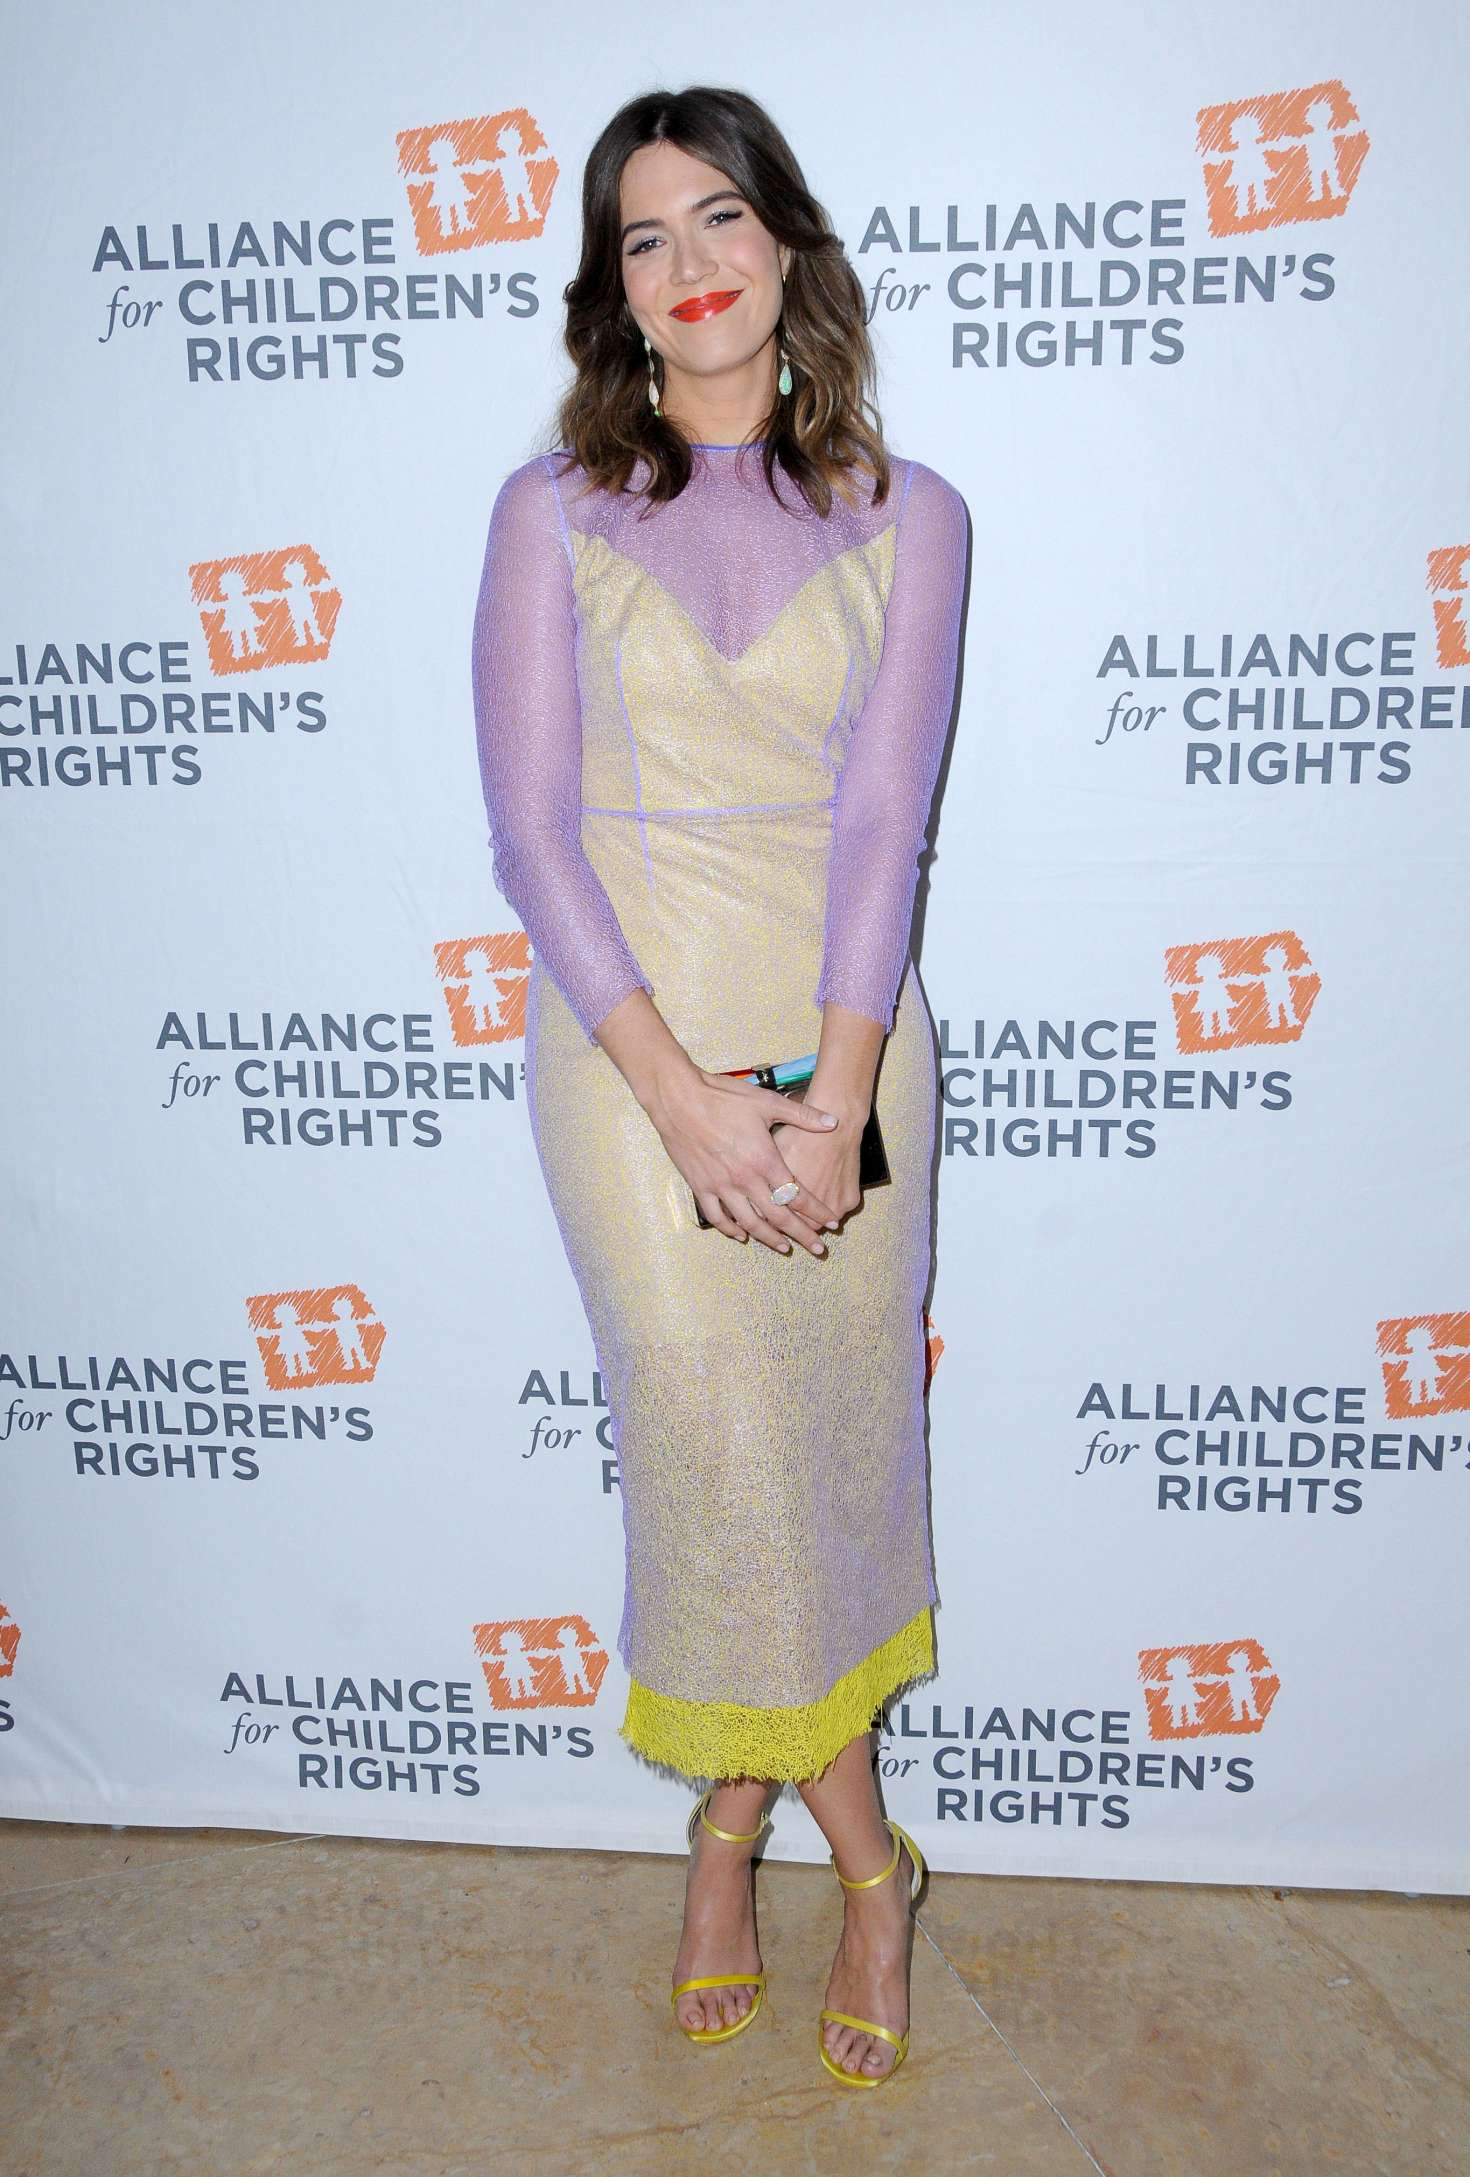 Mandy moore alliance for childrens rights celebration in beverly hills naked (93 photos), Feet Celebrites image